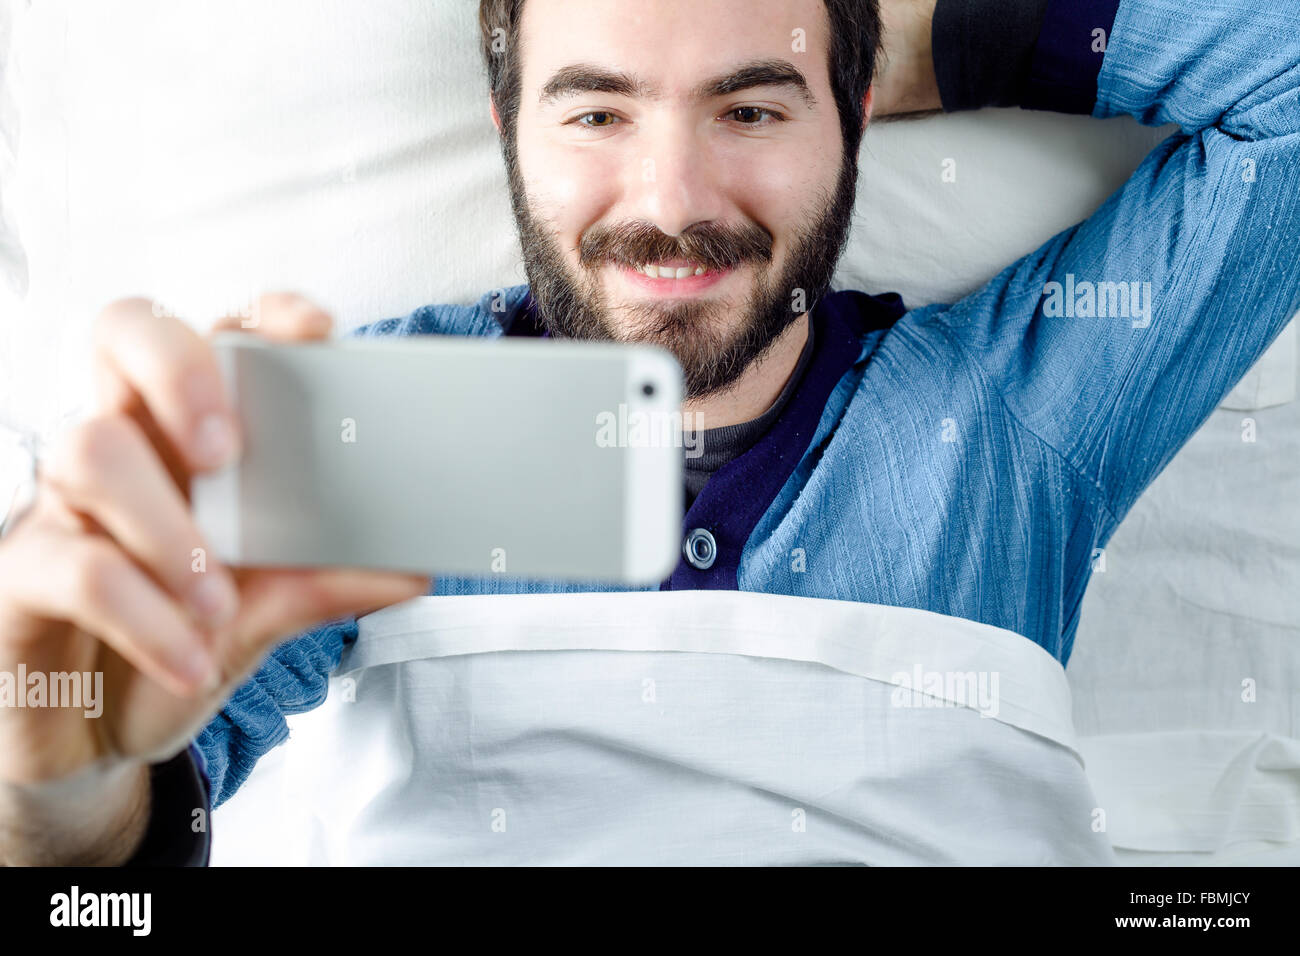 Smiling Man with Pajamas Taking a Selfie with a Smartphone - Stock Image